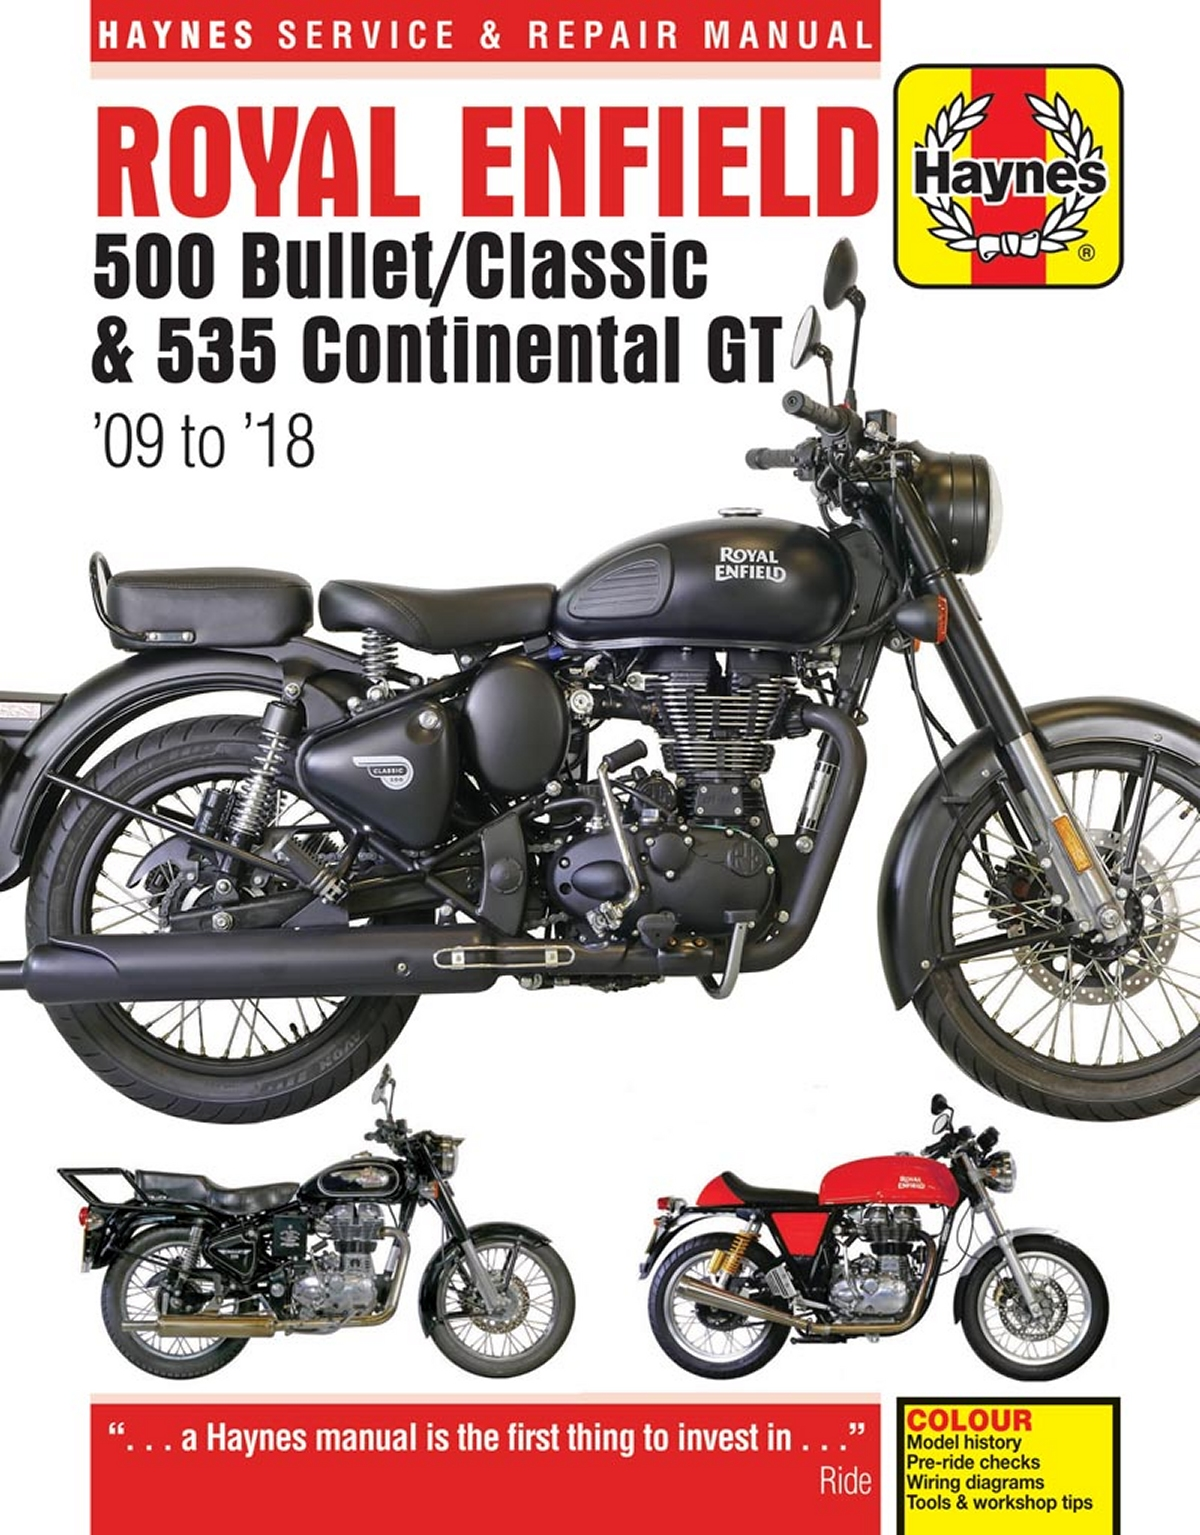 1956 indian royal enfield wiring diagram z3 wiring library diagramhaynes repair manual, 535 gt, bullet \u0026 classic efis (2009 2018 tomos wiring diagram 1956 indian royal enfield wiring diagram